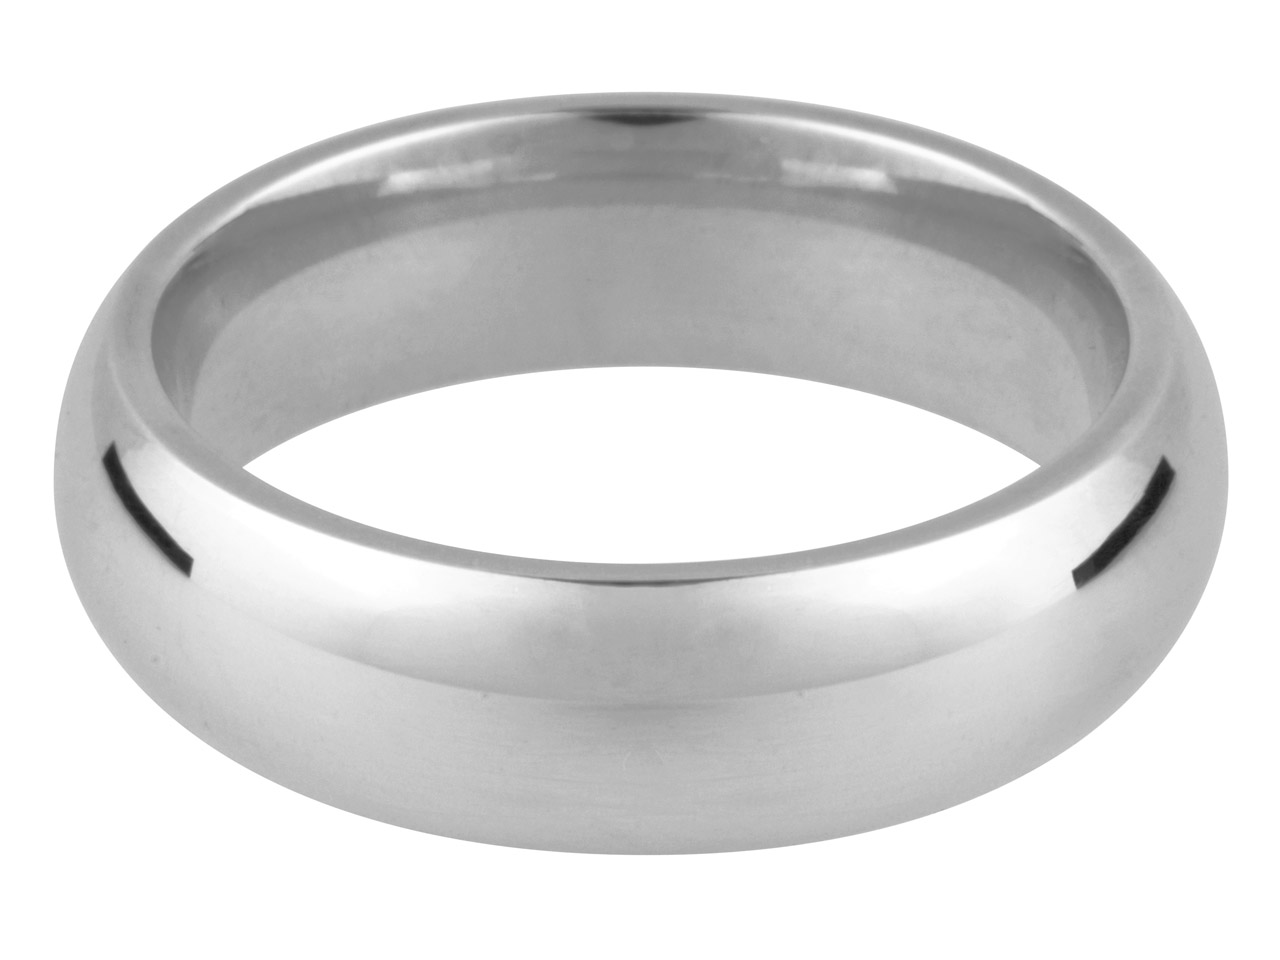 Palladium 500 Court Wedding Ring   8.0mm R 10.1gms Medium Weight      Hallmarked Wall Thickness 2.30mm